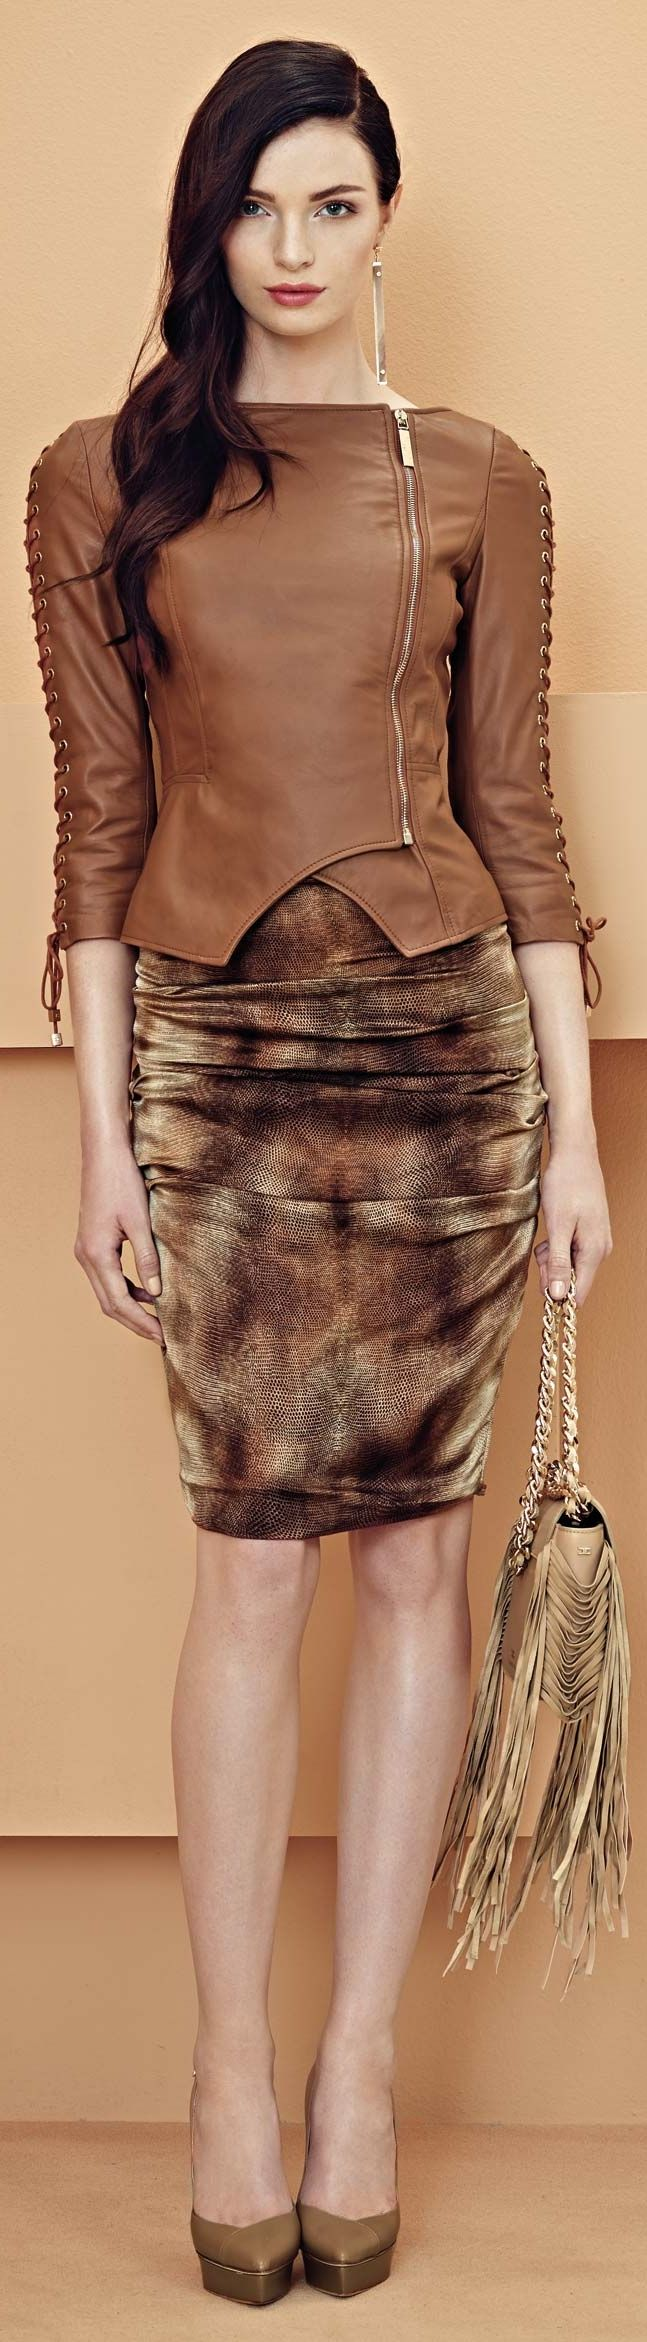 Hemline Inspiration!!!- Elisabetta Franchi S/S 2014 ~ There are so many jacket patterns out there with asymmetrical closures, it would be so easy to alter the hemline to recreate this beauty.